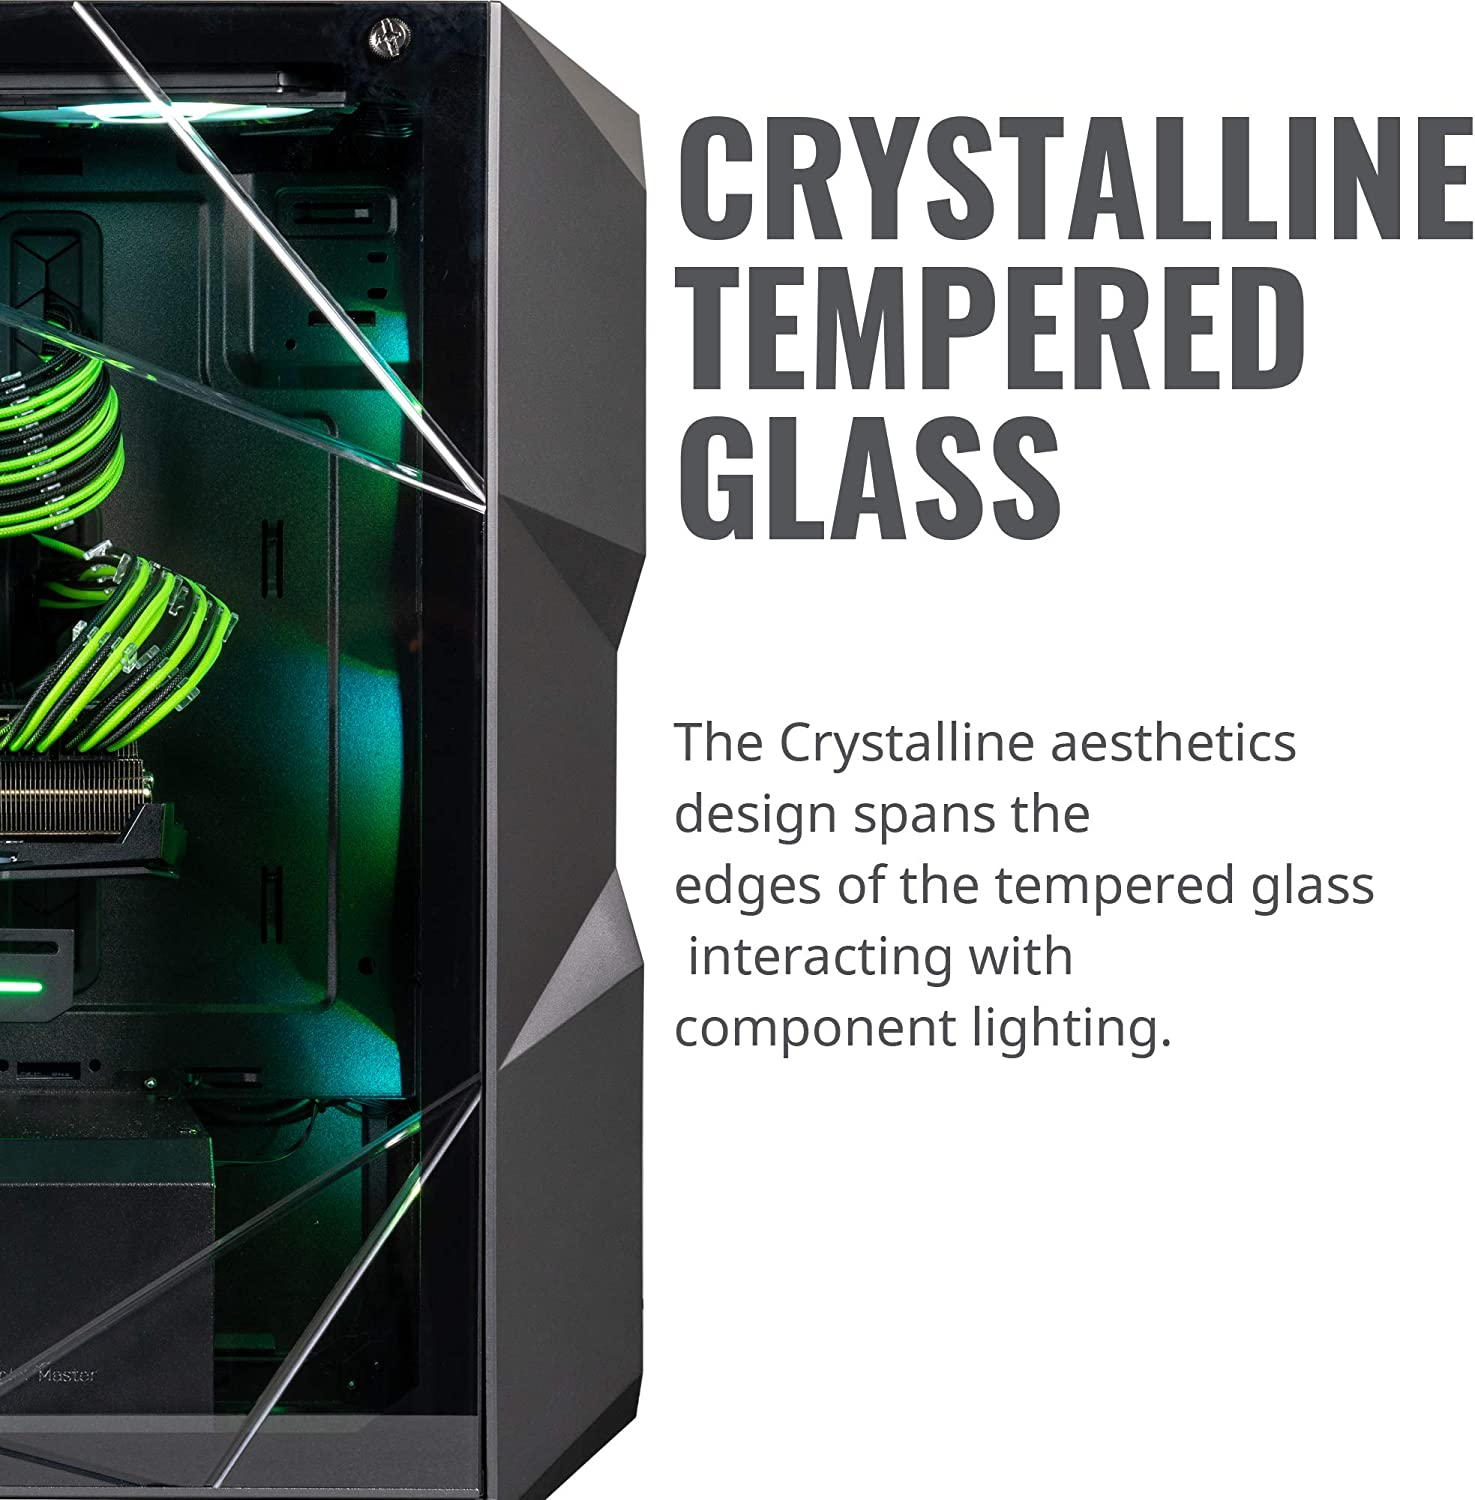 Cooler Master MasterBox TD500 Mesh White Airflow ATX Mid-Tower w//E-ATX Support Crystalline Tempered Glass /& 3 ARGB Fans w//Controller Polygonal Mesh Front Panel